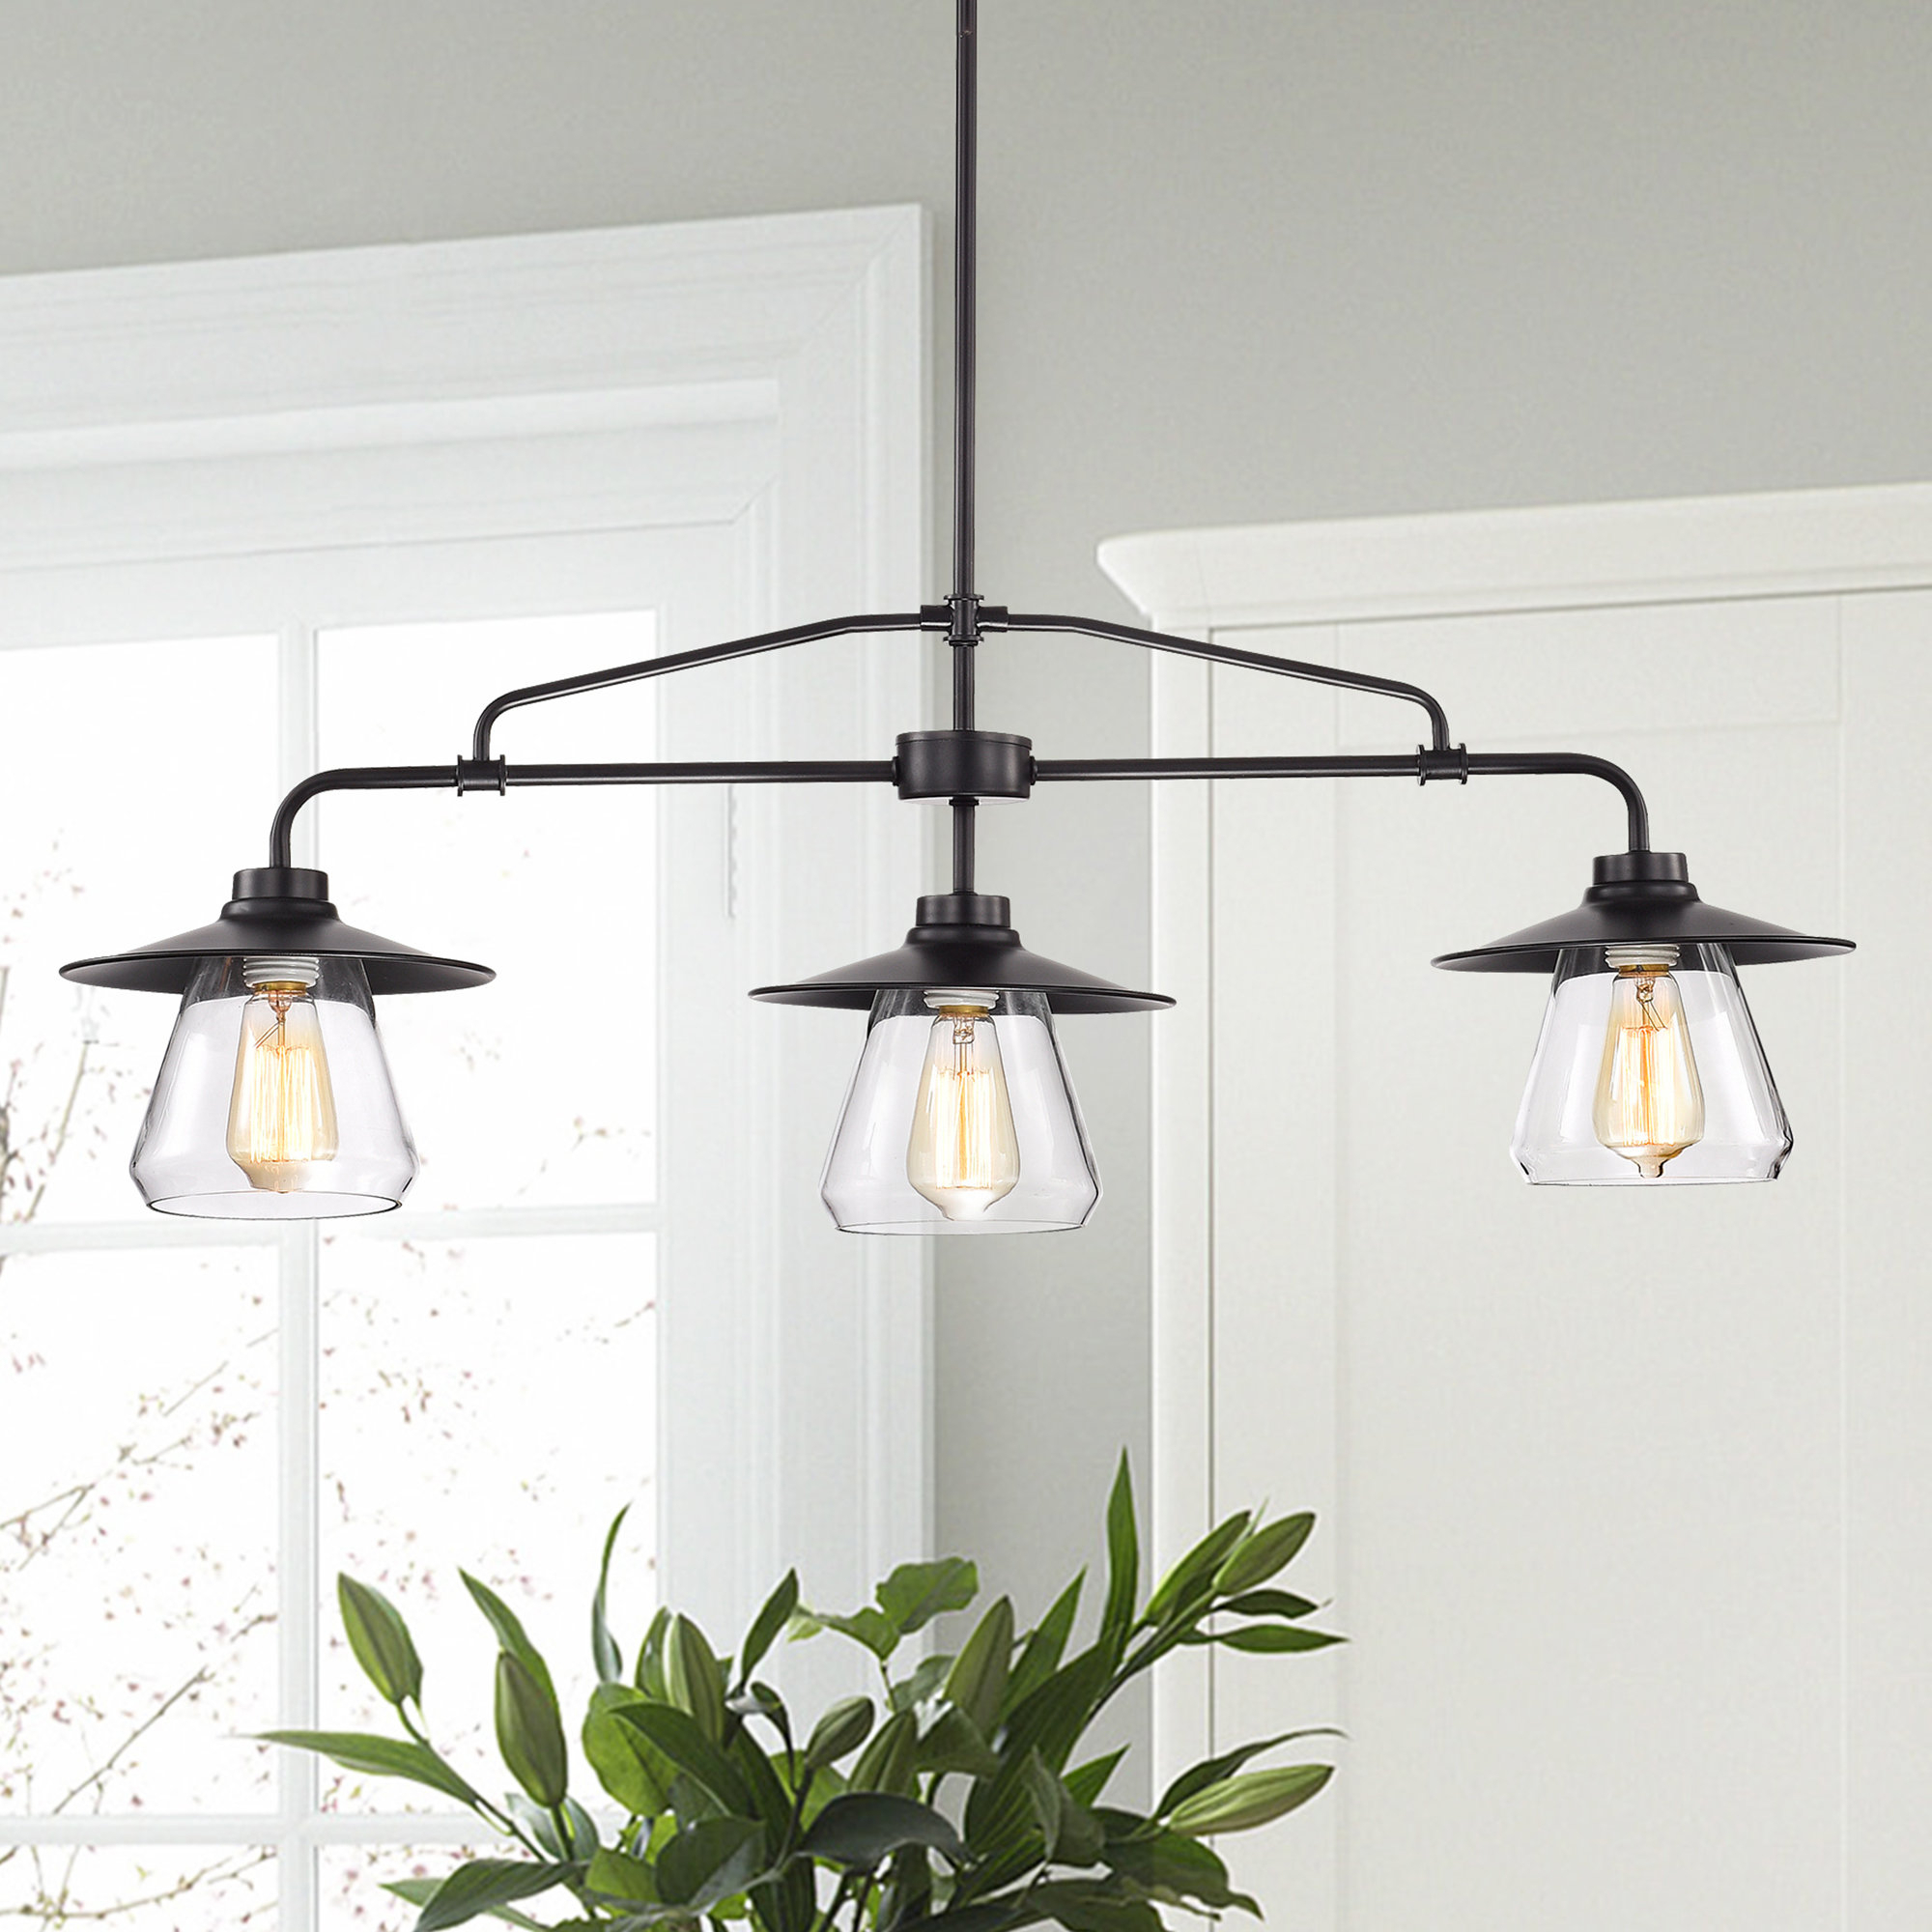 Kitchen Island Pendant Lighting Fixtures – Gnubies Inside Most Up To Date Ariel 2 Light Kitchen Island Dome Pendants (Gallery 12 of 25)